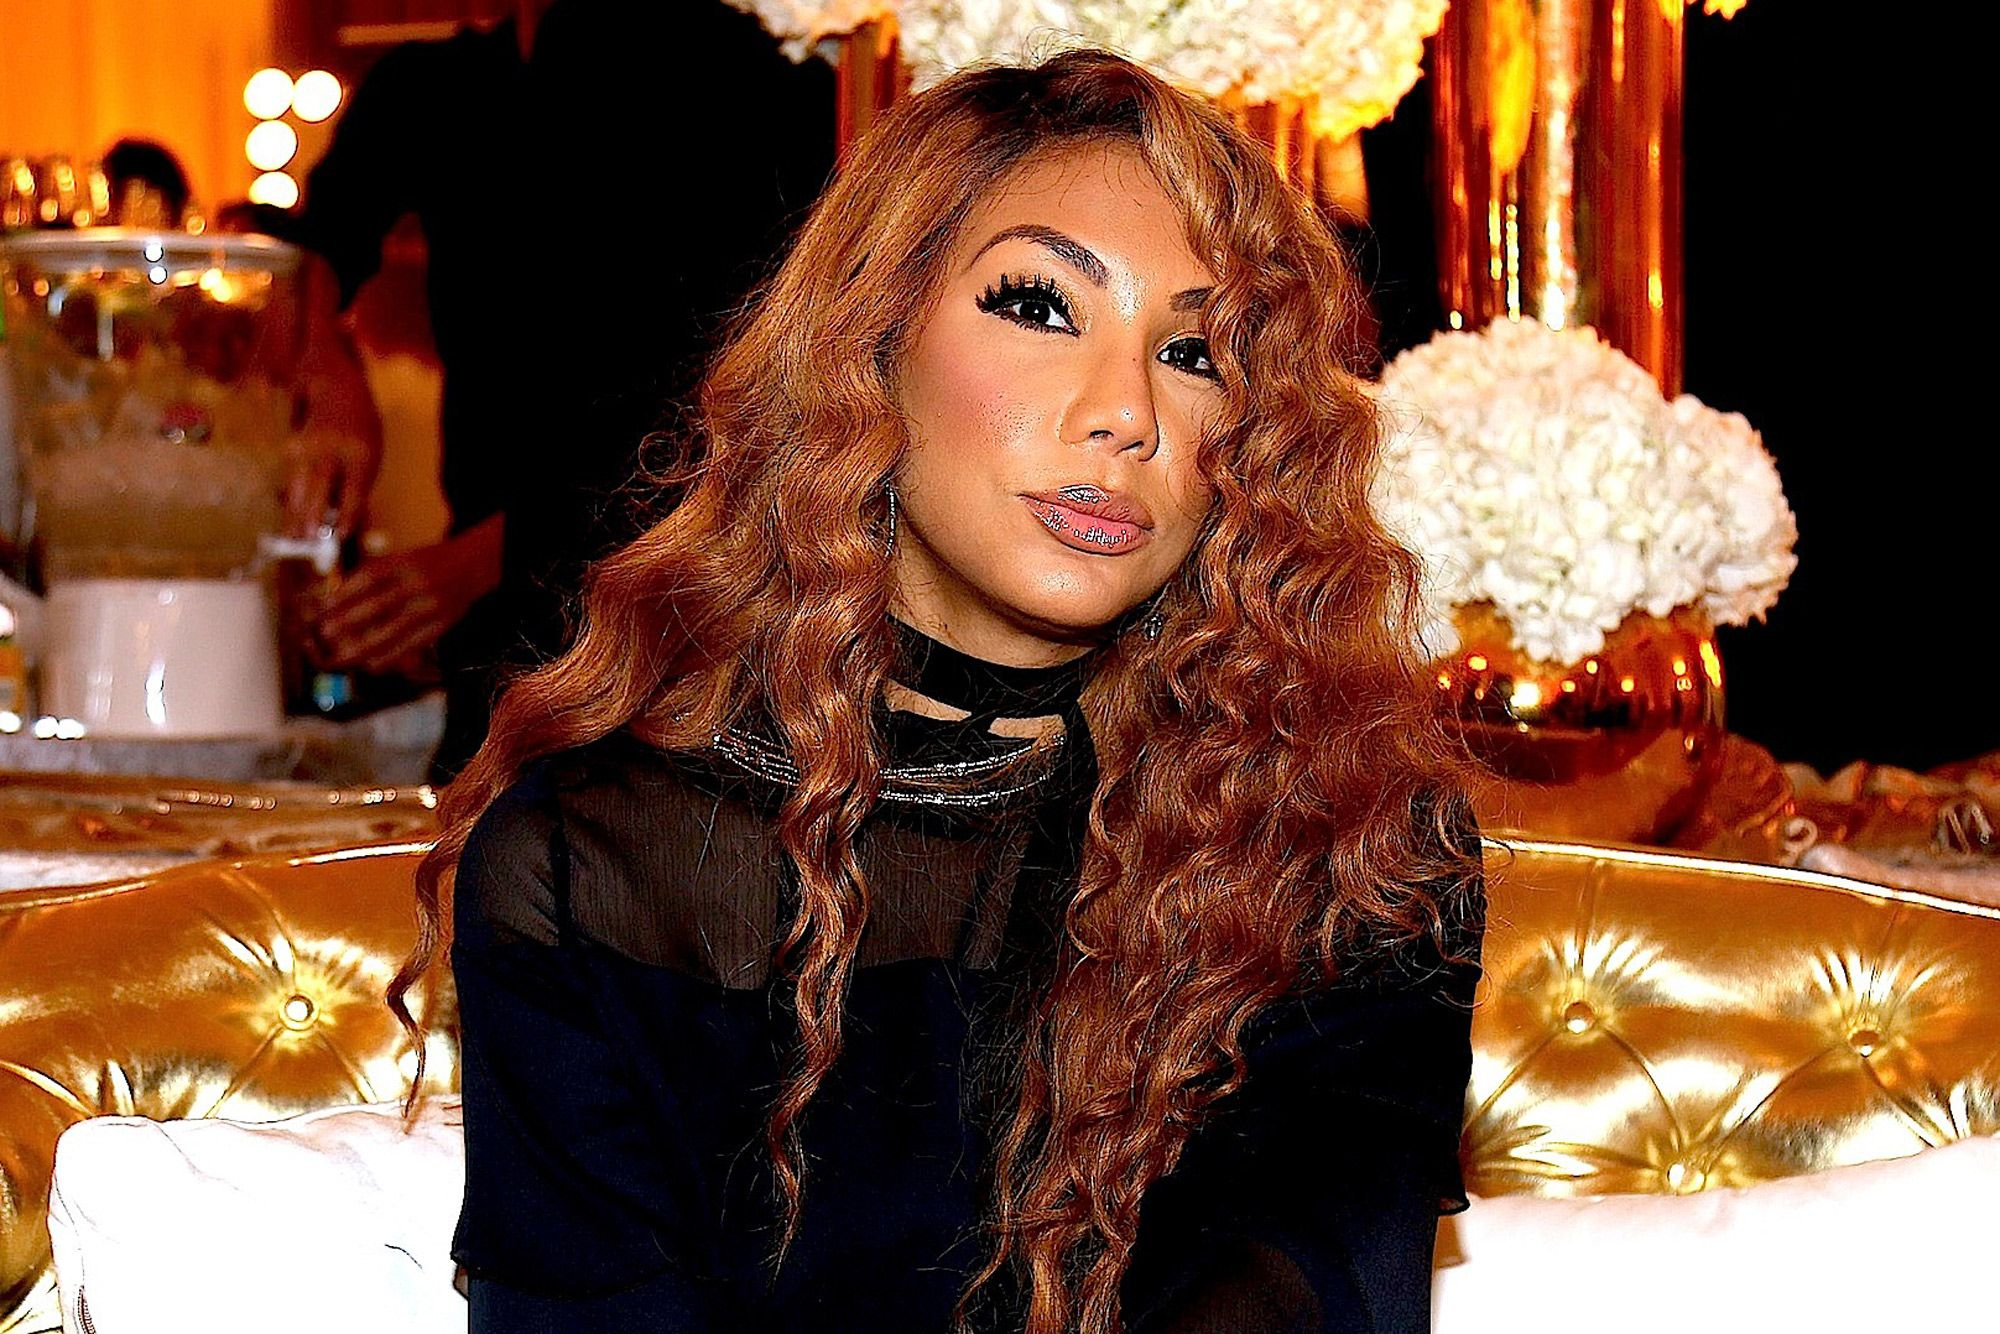 Tamar Braxton's Engagement Video With David Adefeso Has Some Fans Criticizing Her